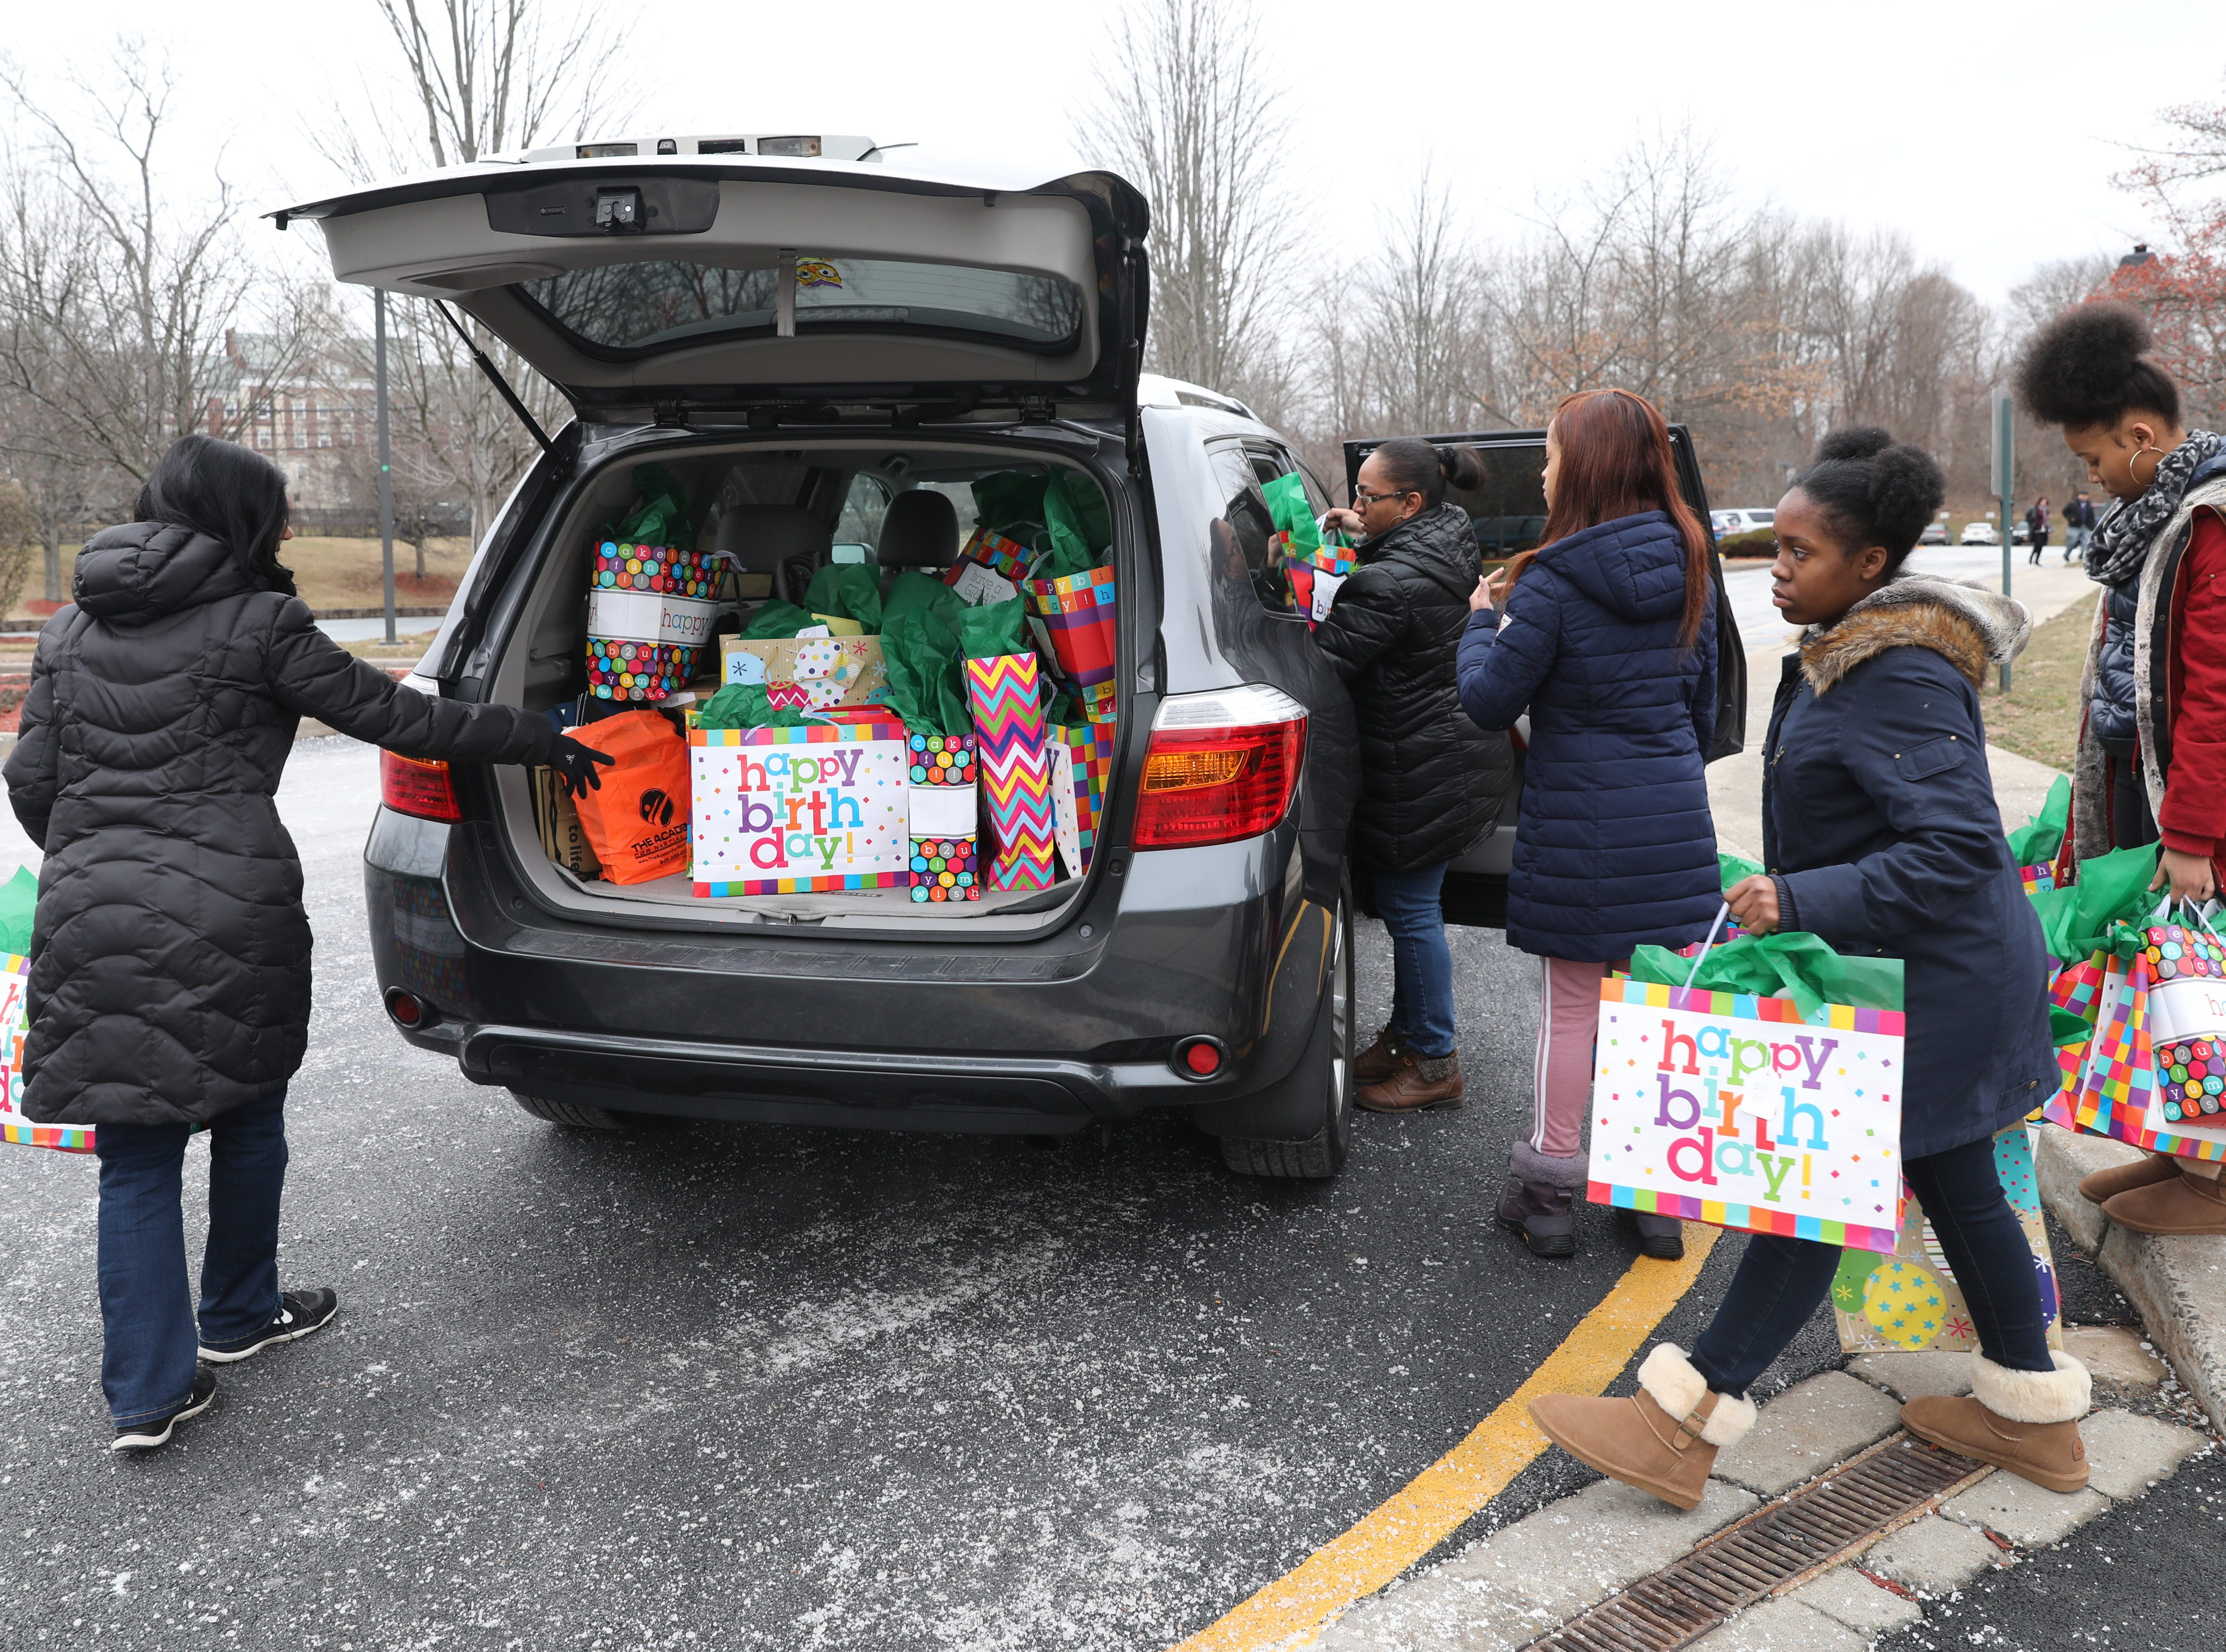 """""""Birthday Bags"""" are loaded into a car for transport, during the Volunteer New York, Martin Luther King Jr. National Day of Service program at Dominican College in Orangeburg, Jan. 19, 2019. The birthday bags will be brought to the Nyack Center for distribution."""